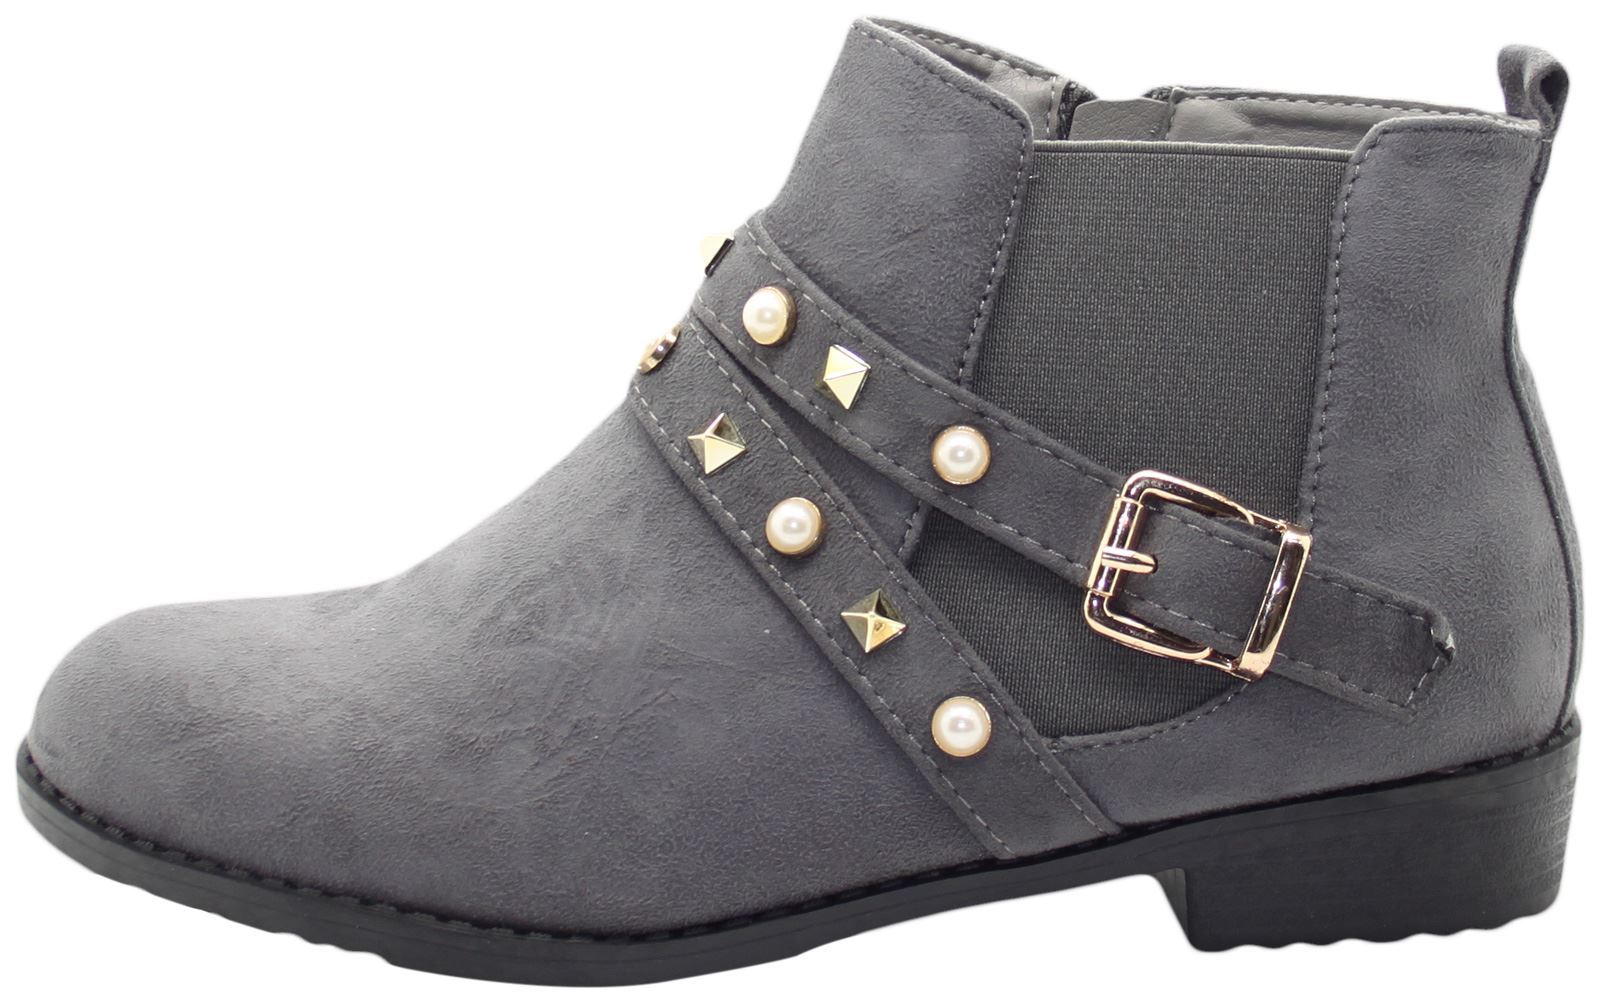 New-Women-Chelsea-Ankle-Boots-Winter-Block-Heel-Ladies-Biker-Style-Boots thumbnail 15